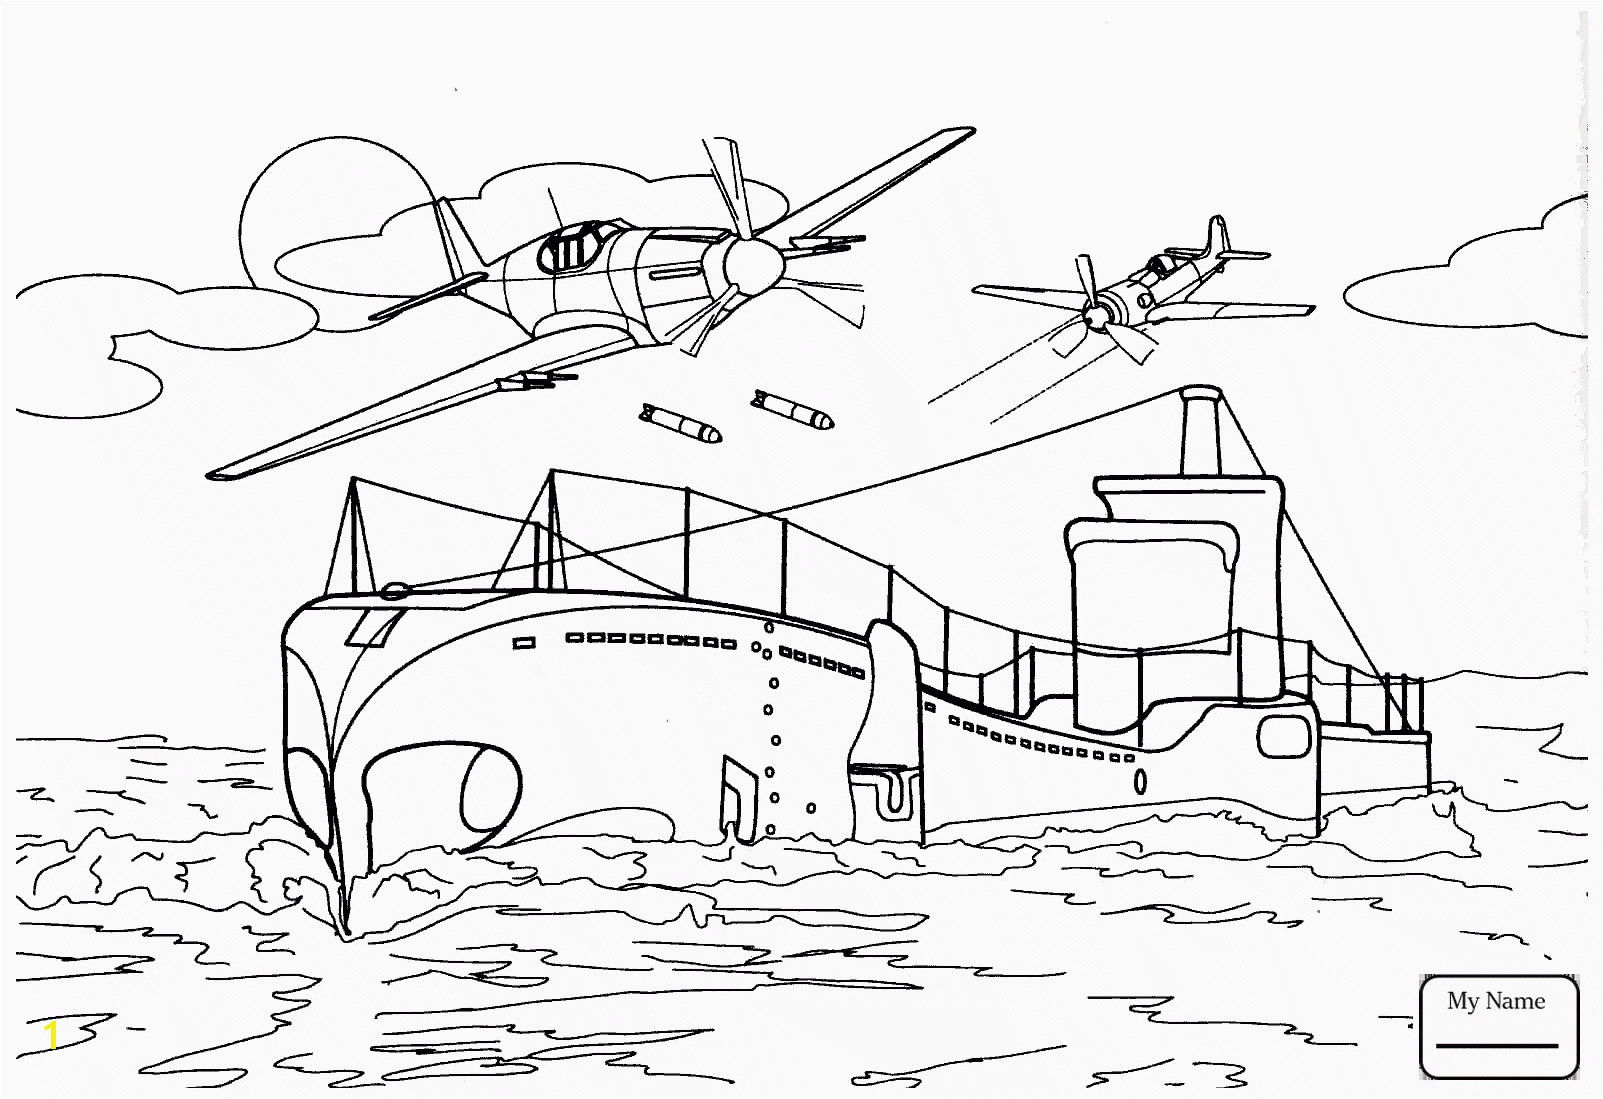 New Ships coloring pages Gallery 1 i War Ship Coloring Pages Pics Military Navy